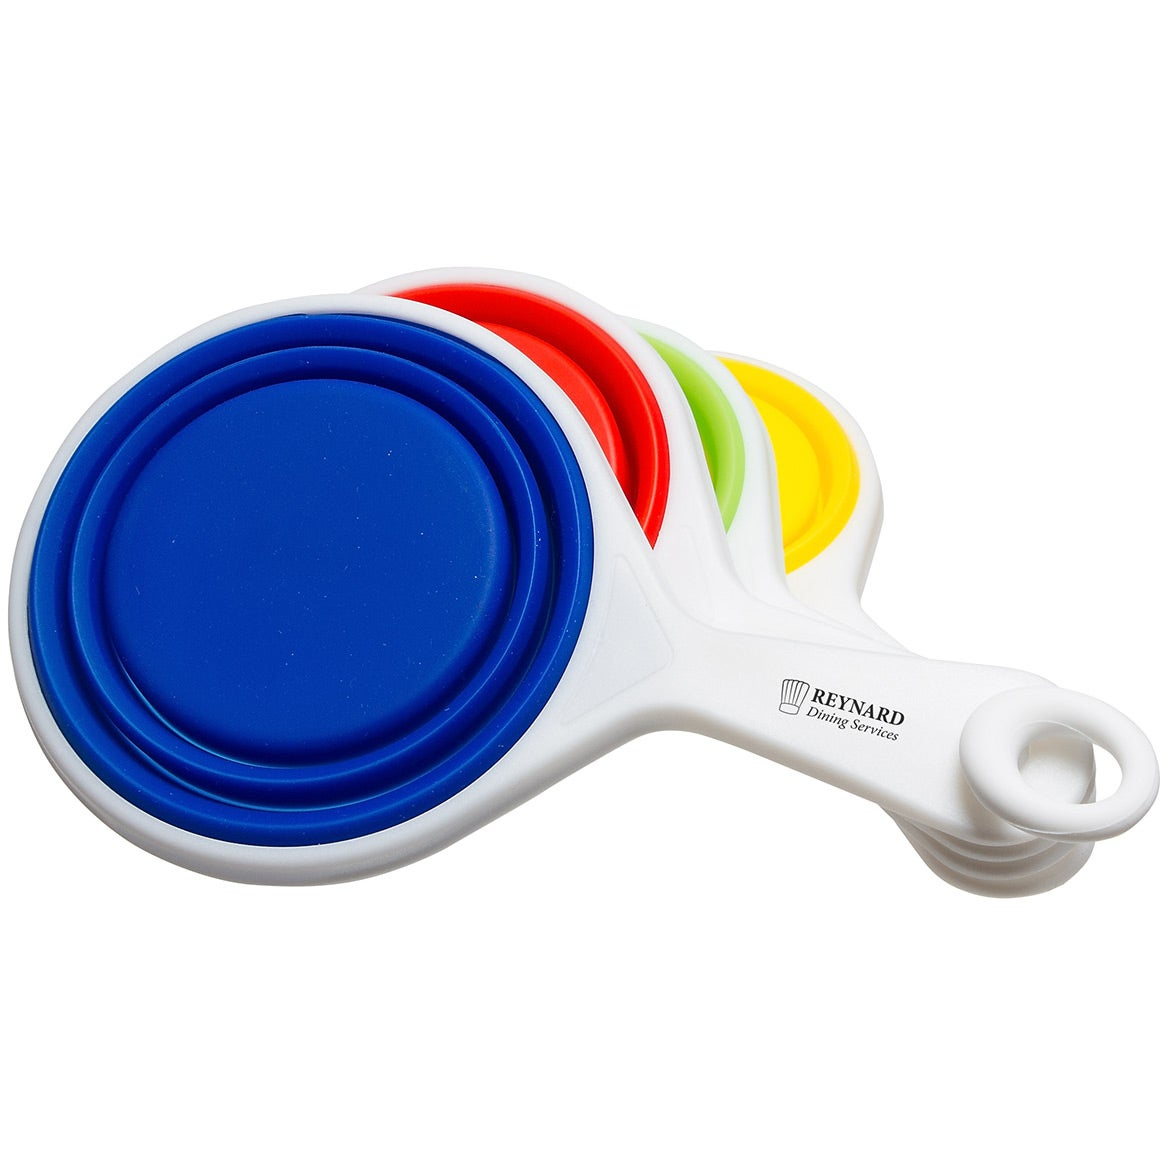 Pop out silicone measuring cups trade show giveaways 4 for Colors that pop out